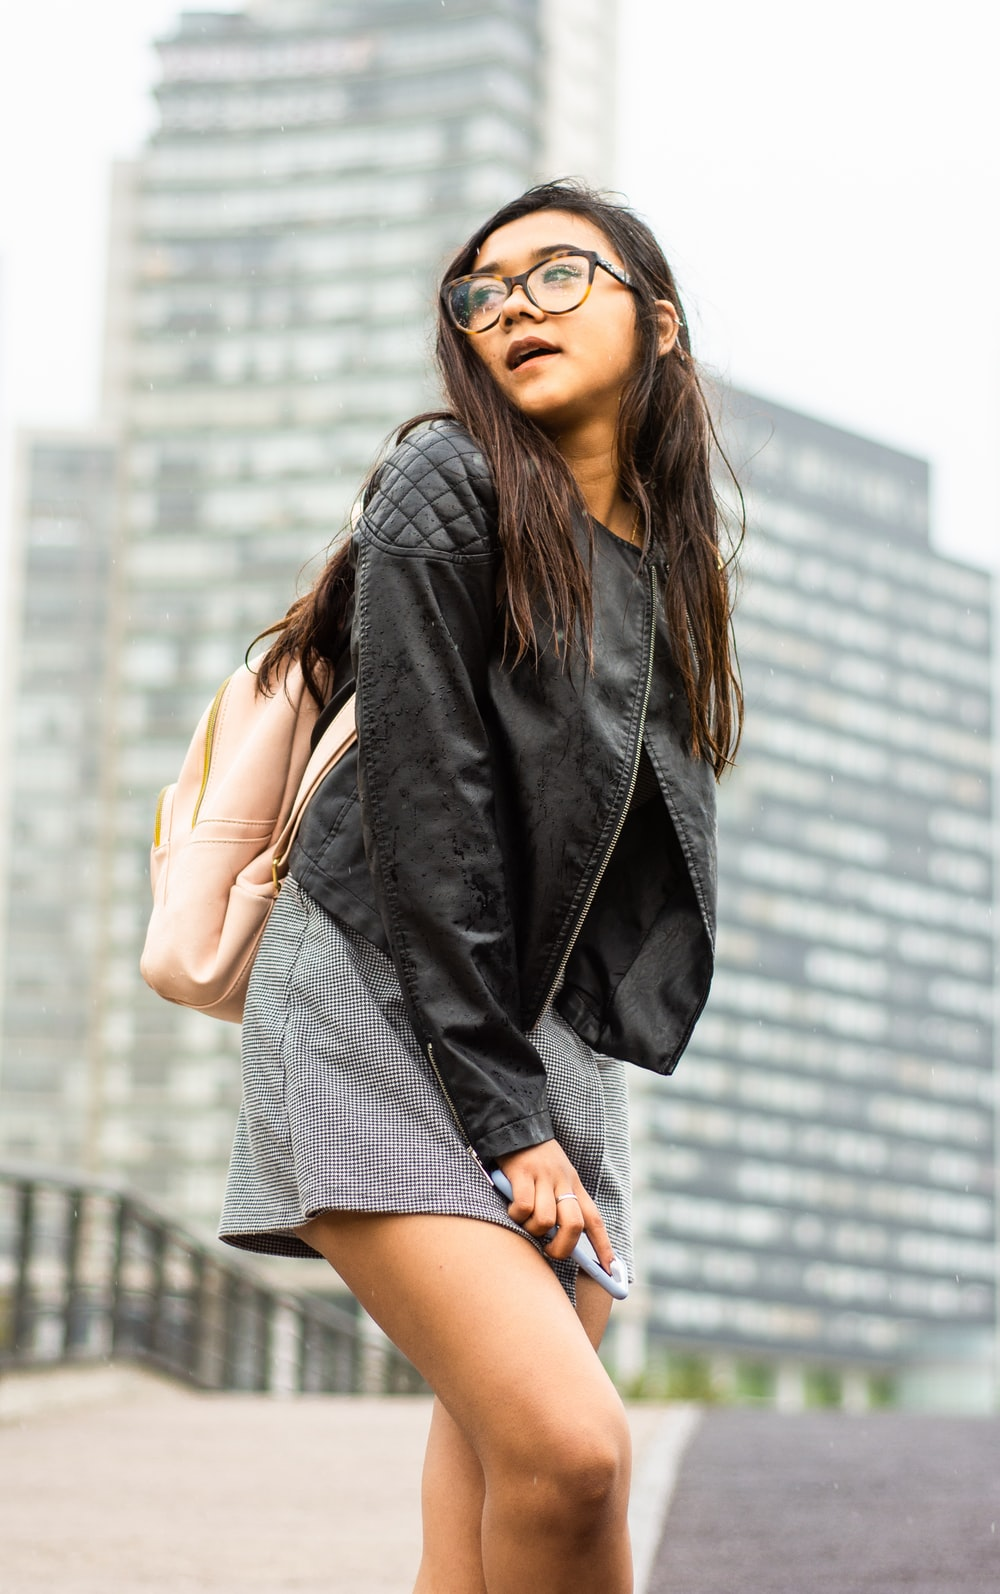 woman in black zip-up jacket and gray skirt